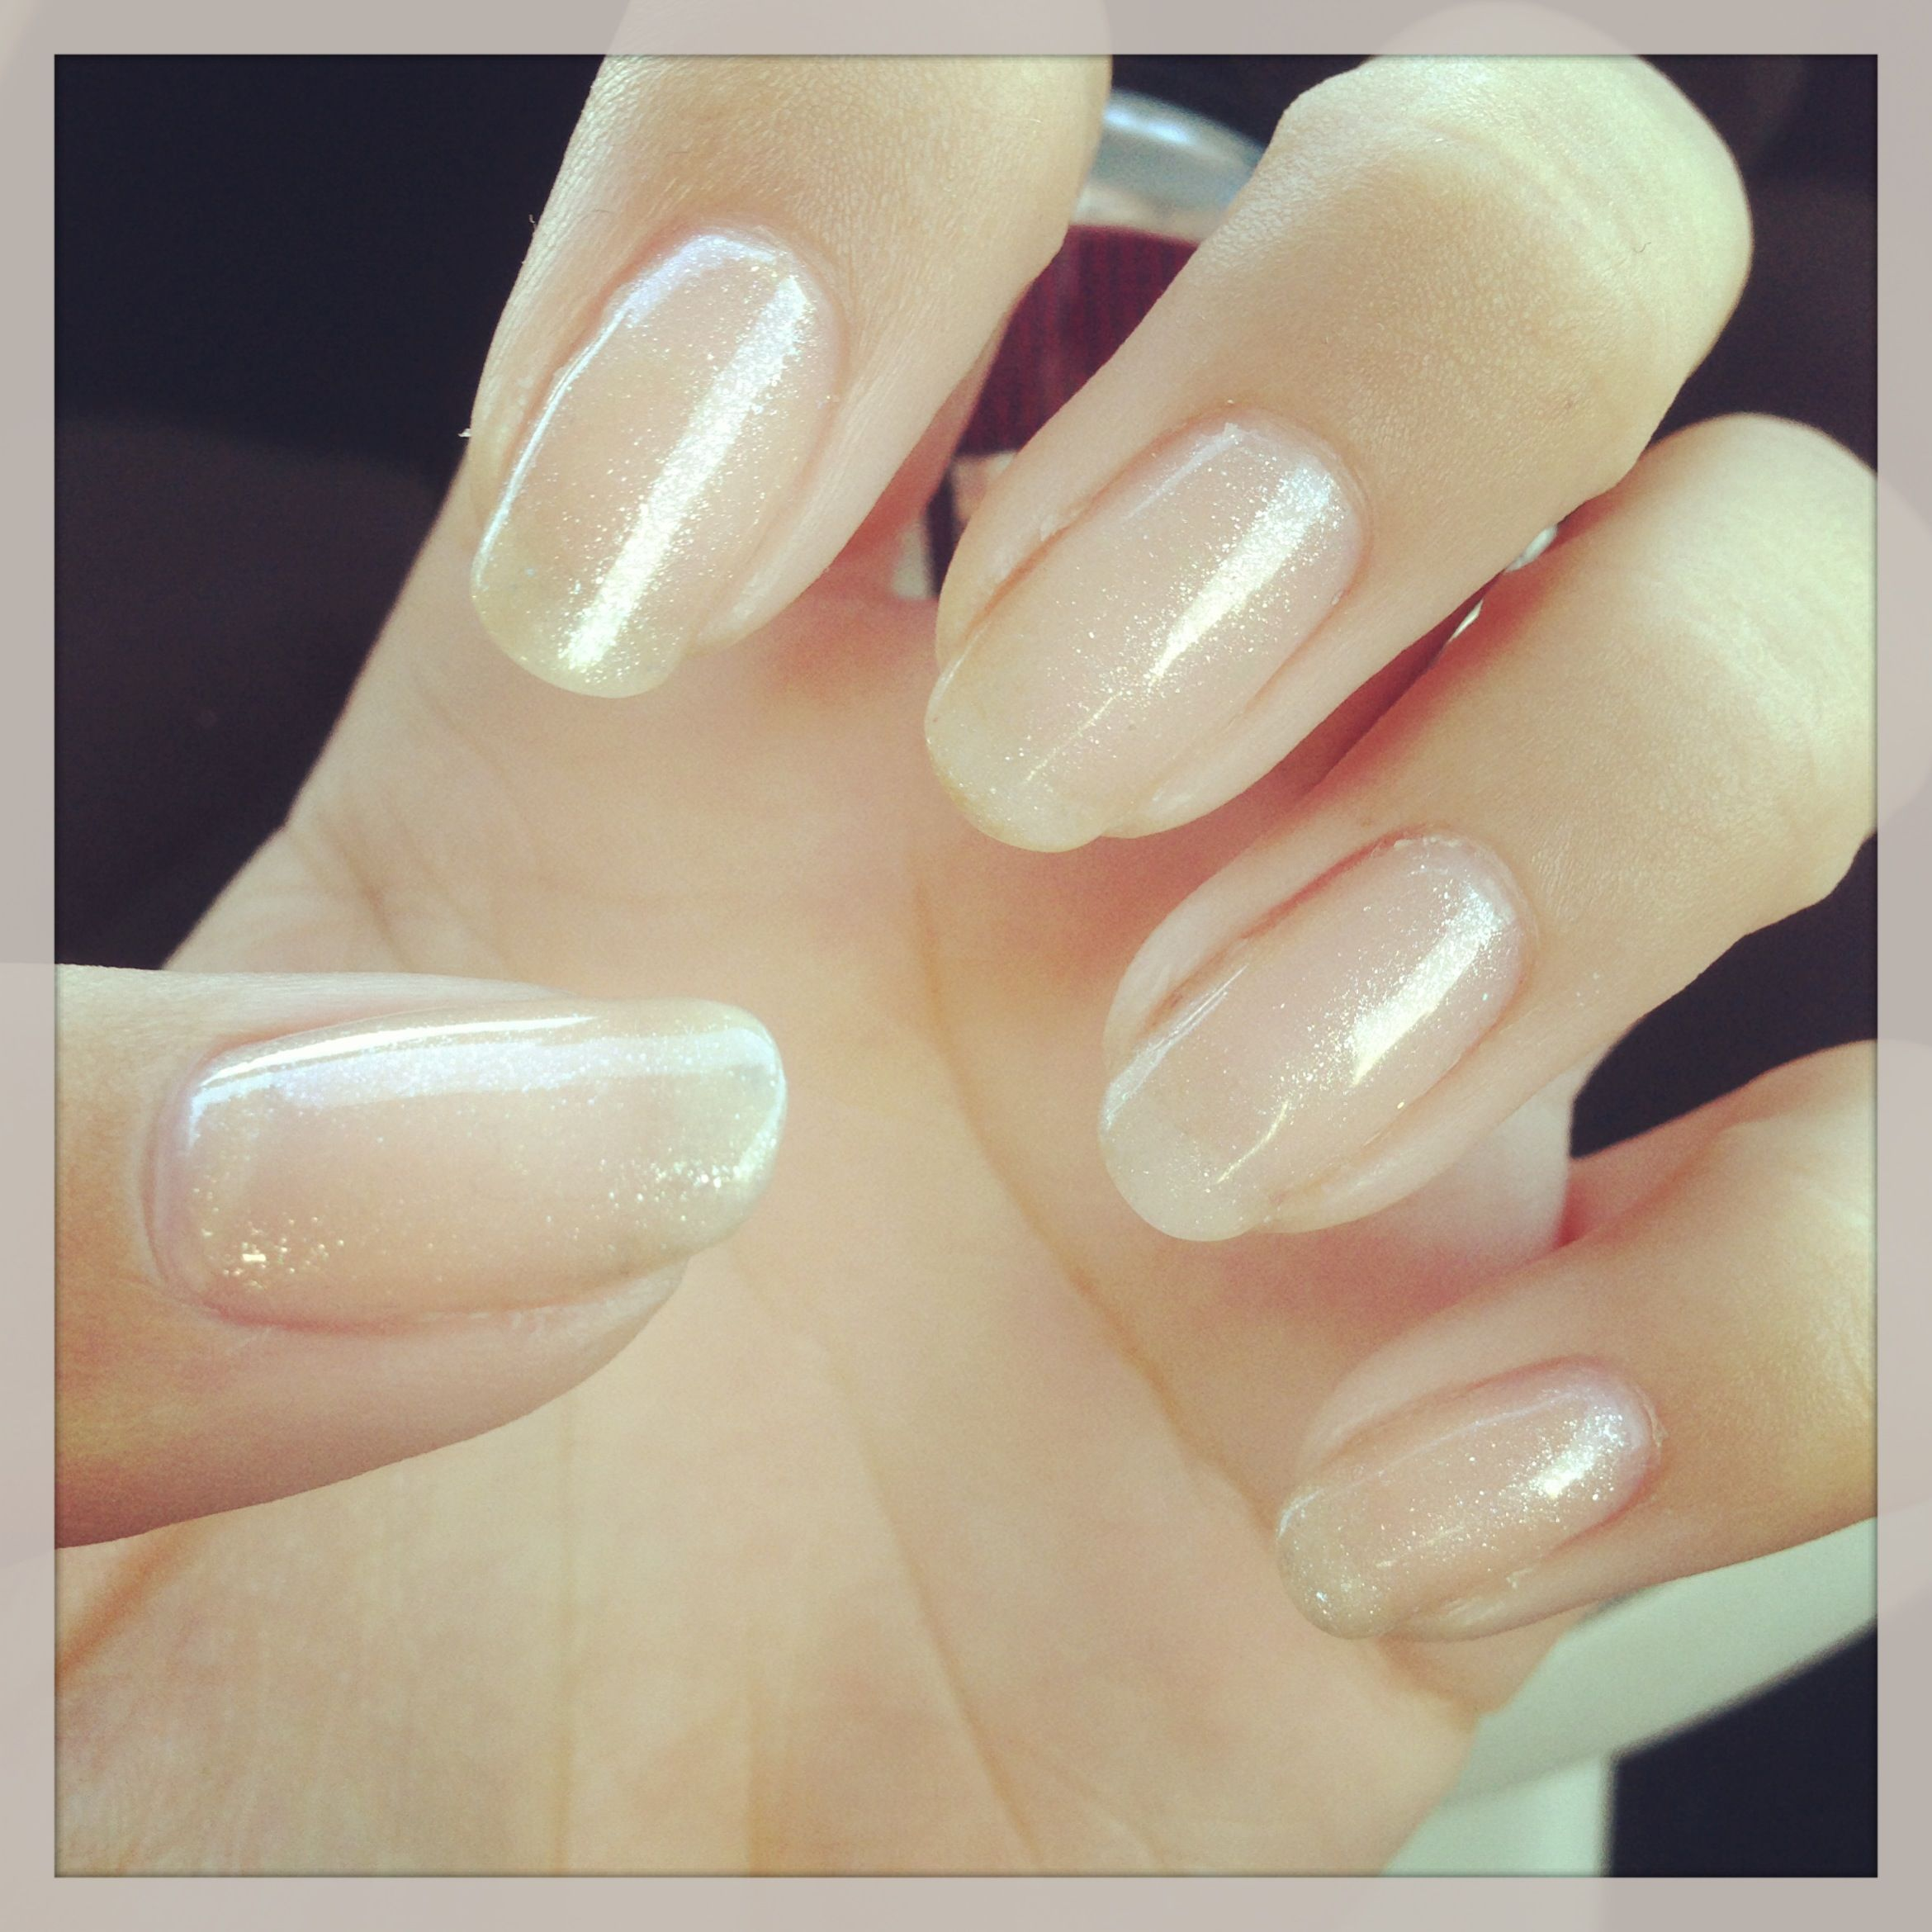 Pretty Natural Nails Nails Natural Beauty Nail Harmony Gelish Desery Sands Manicure Gelish Manicure Natural Nails